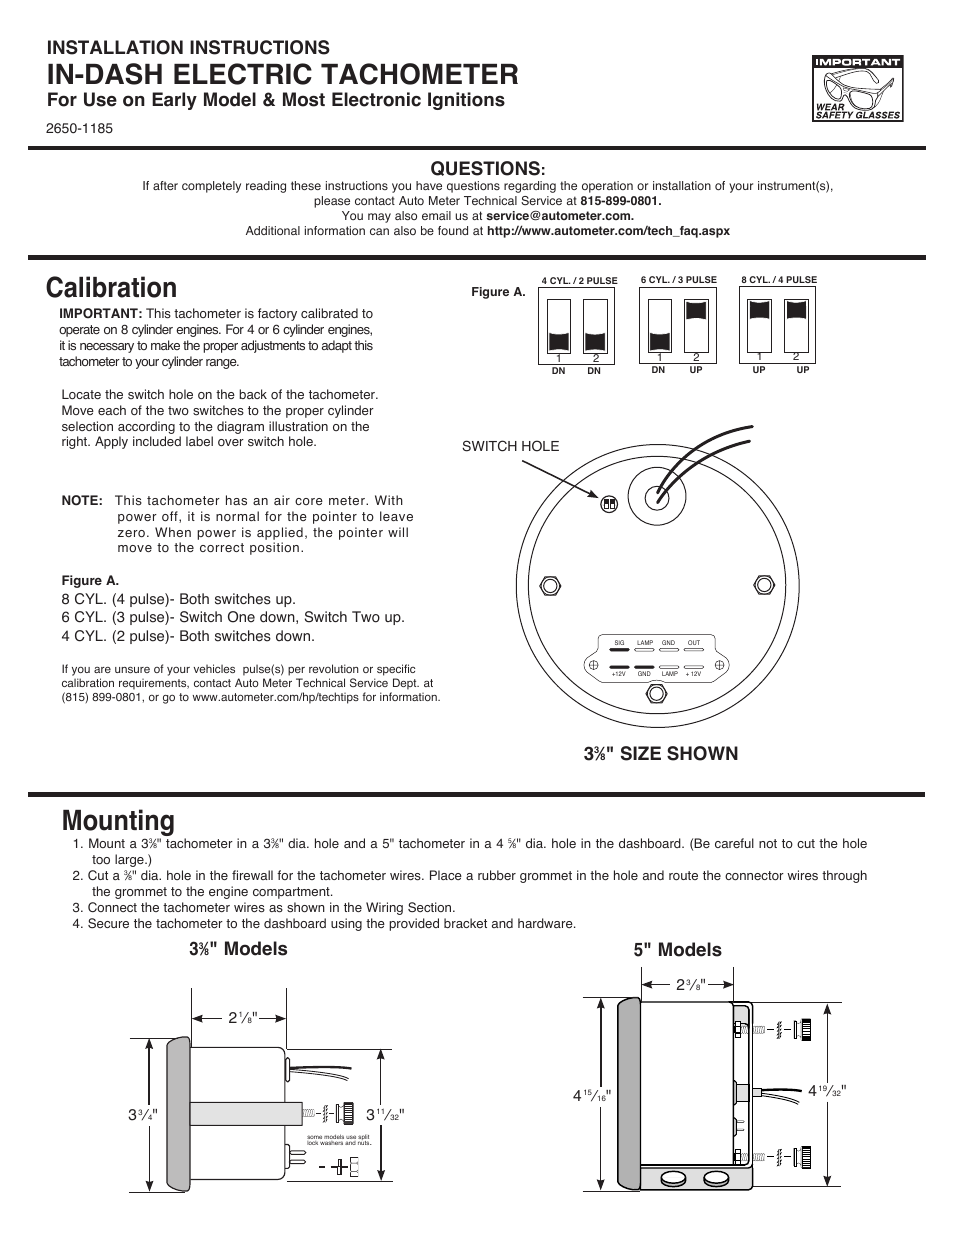 Auto Meter 5898 User Manual | 2 pages | Also for: 1499, 4898 ... on